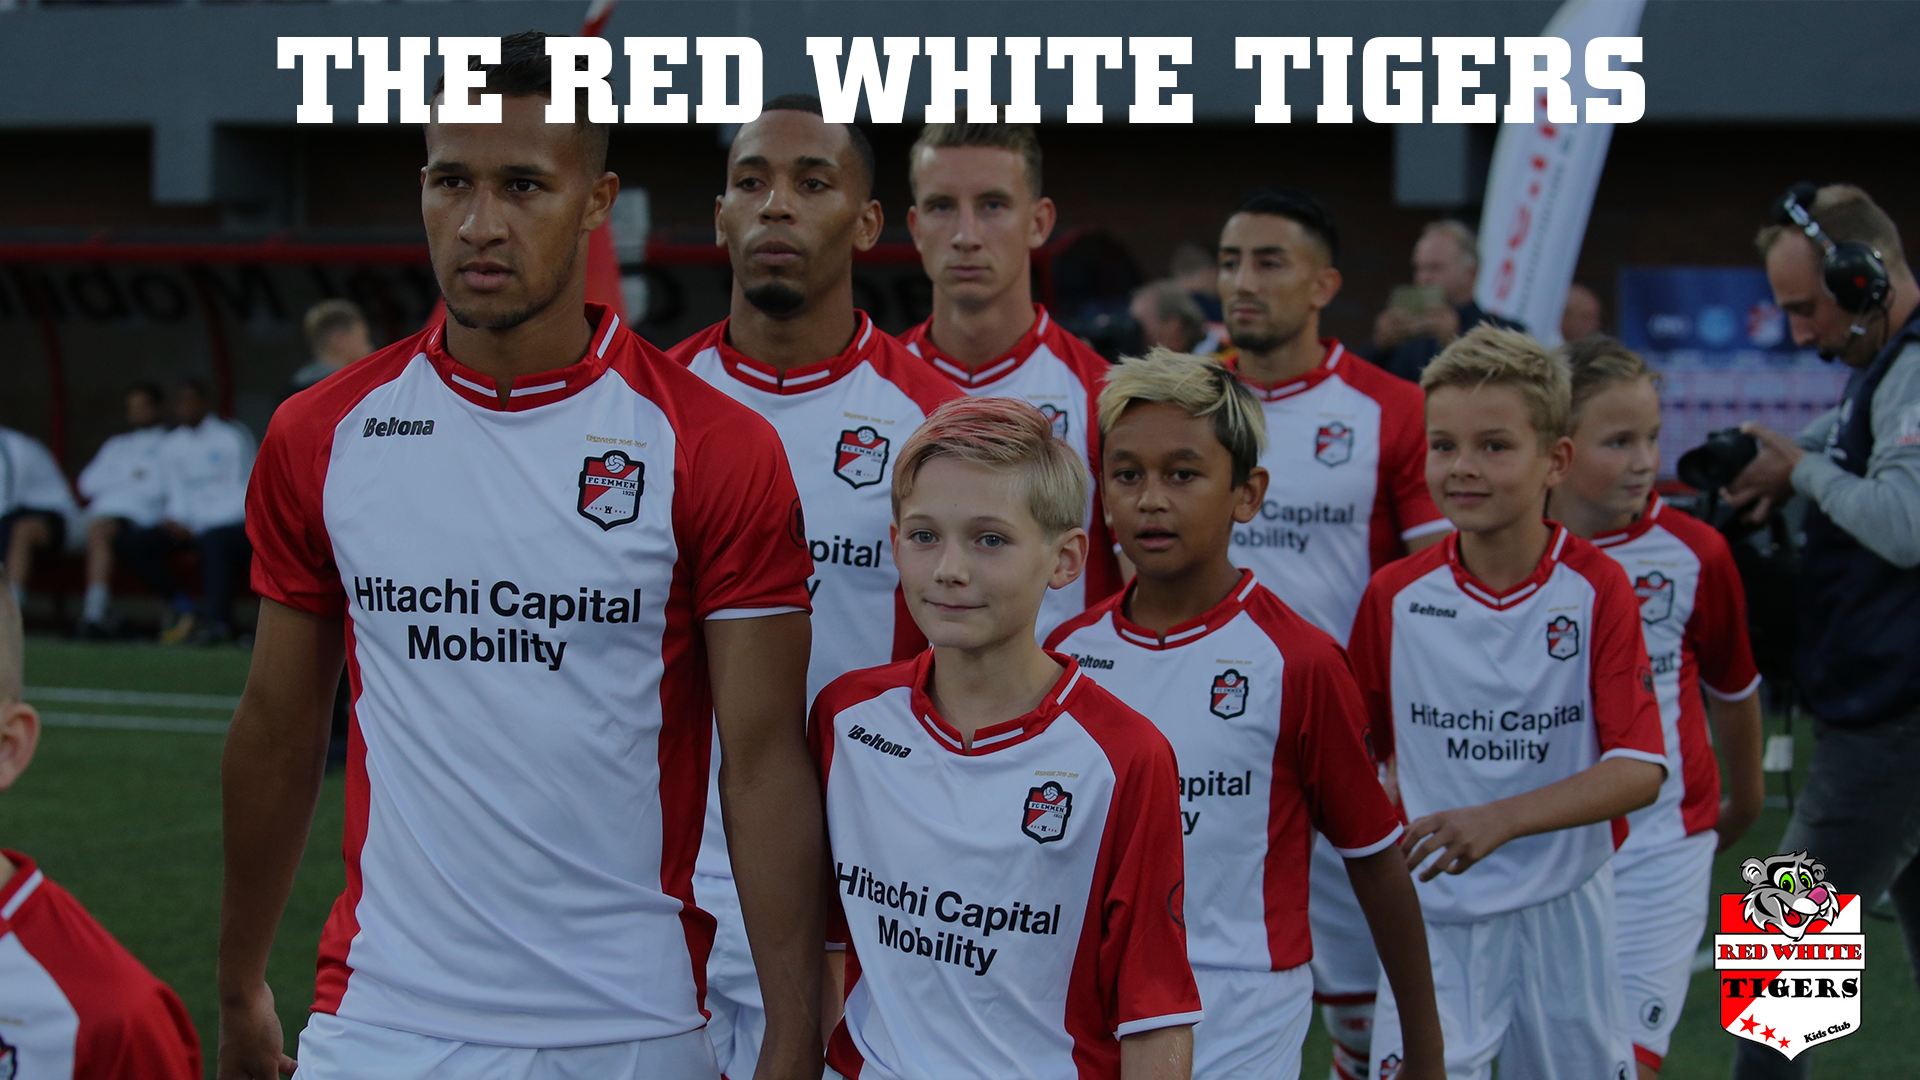 The red white tigers (003)